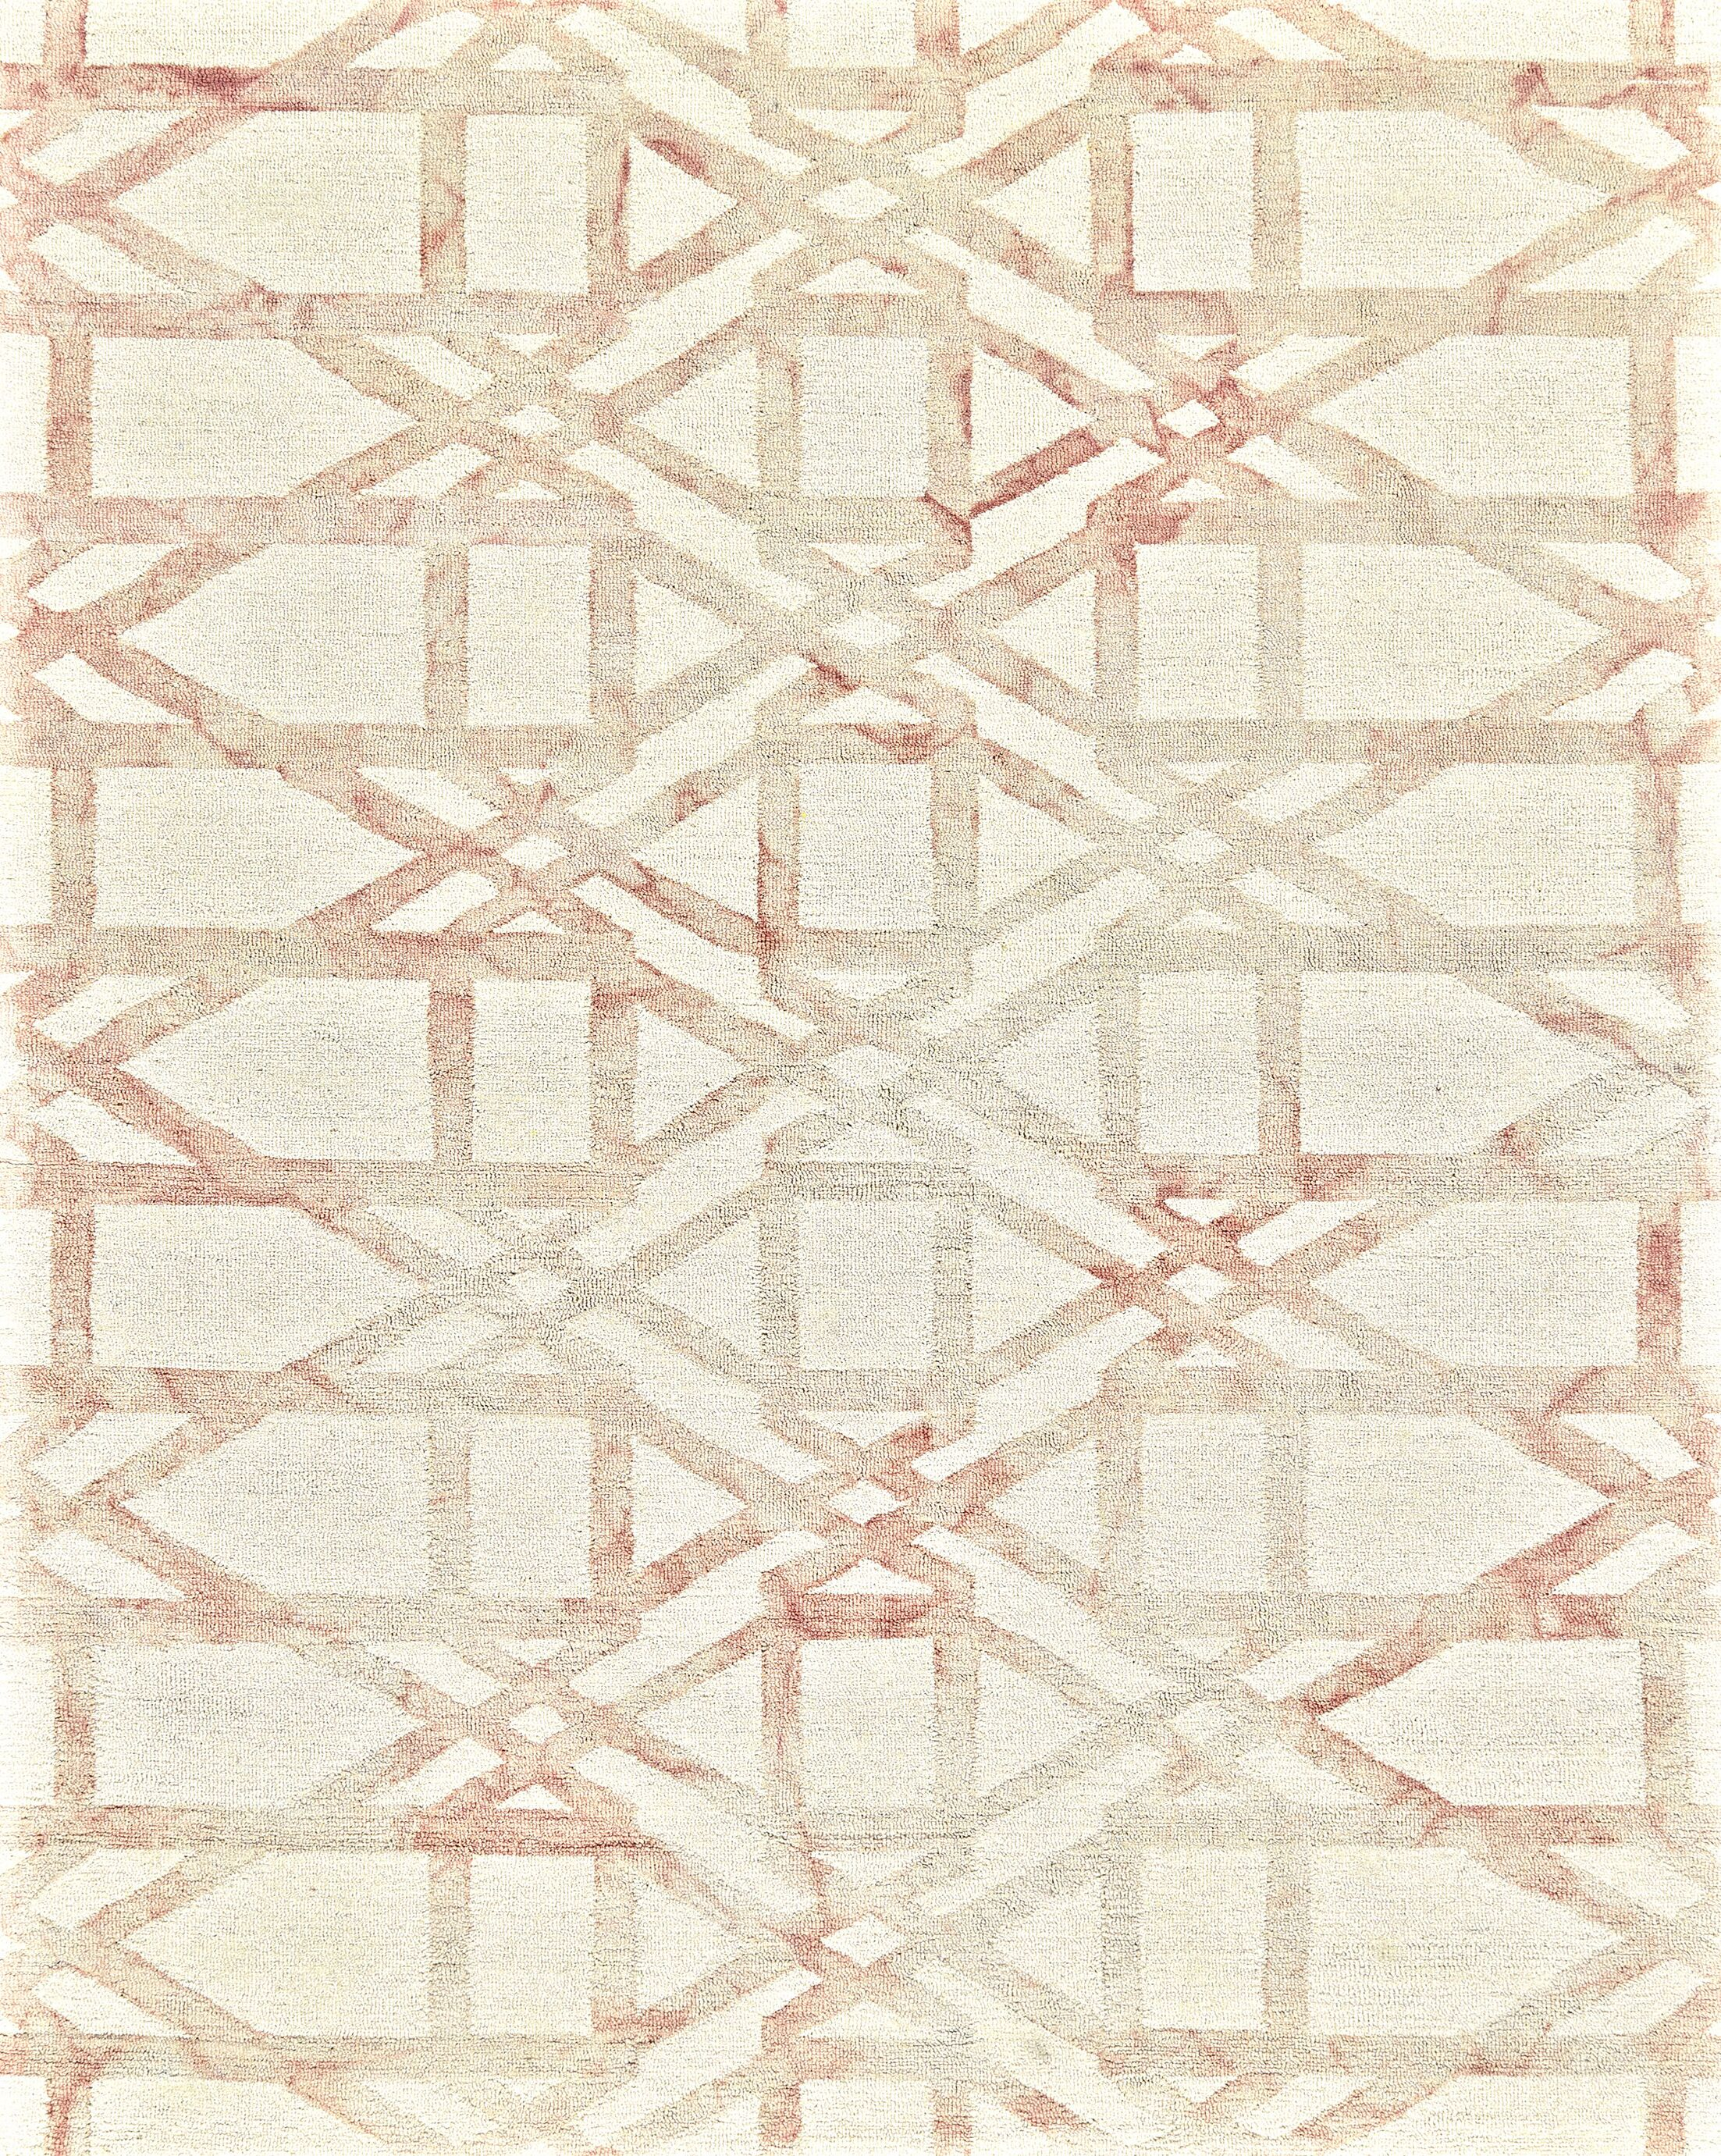 Frederick Hand-Hooked Wool Blush Area Rug Rug Size: Rectangle 9'6